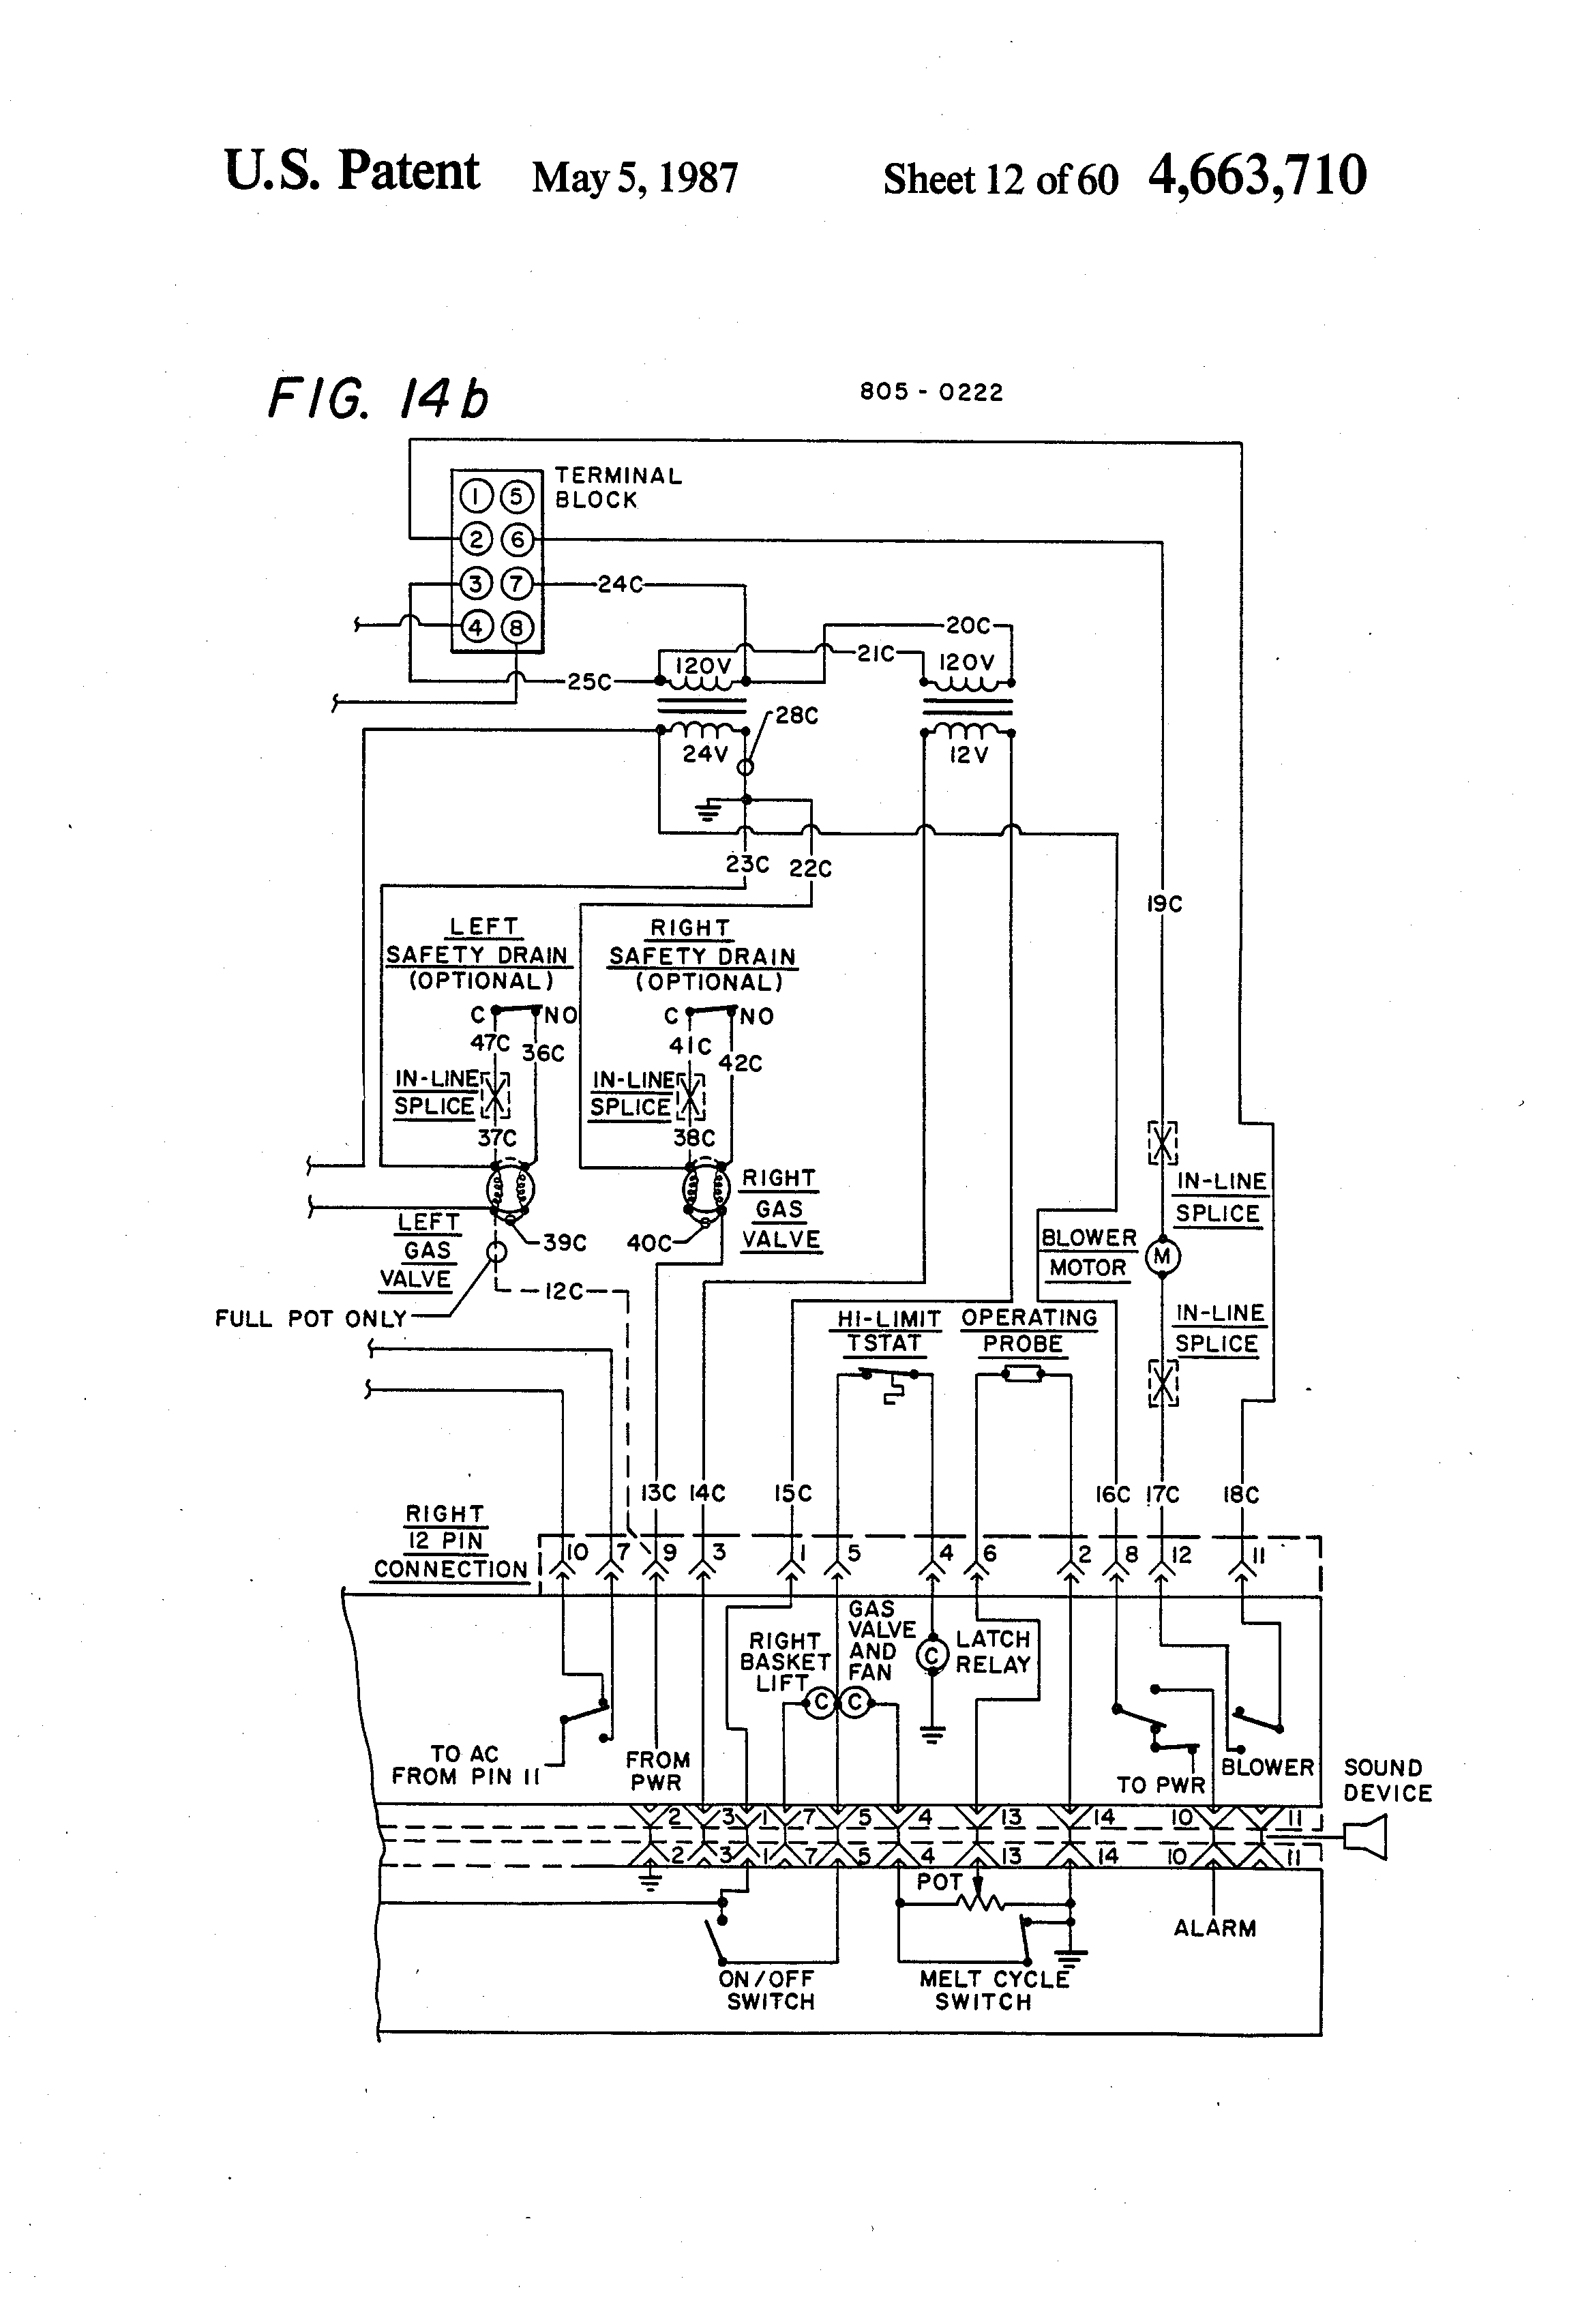 imperial deep fryer wiring diagram Collection-Imperial Deep Fryer Wiring Diagram Unique Frymaster Fryer Troubleshooting Gallery Free Troubleshooting 2-p